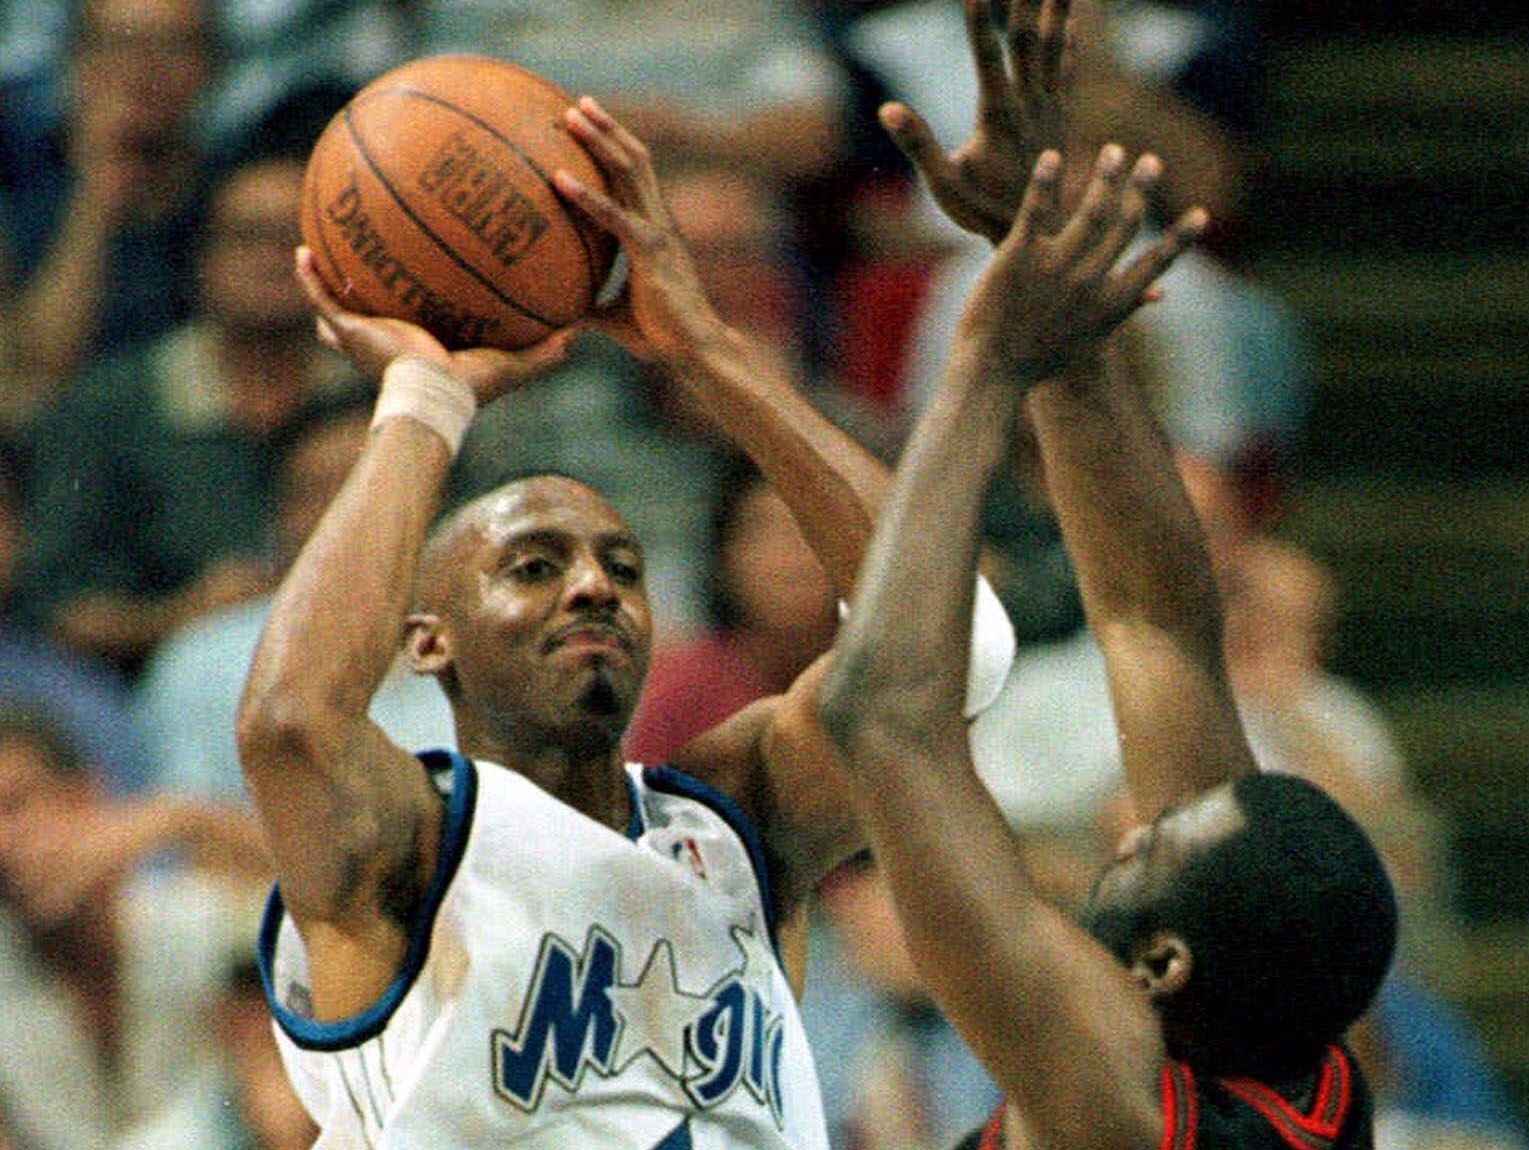 """Four-time NBA all-star Anfernee """"Penny"""" Hardaway, shown during his playing days with the Orlando Magic, is in Springfield Jan. 12-14 coaching Memphis East High School in the 2017 Bass Pro Tournament of Champions"""